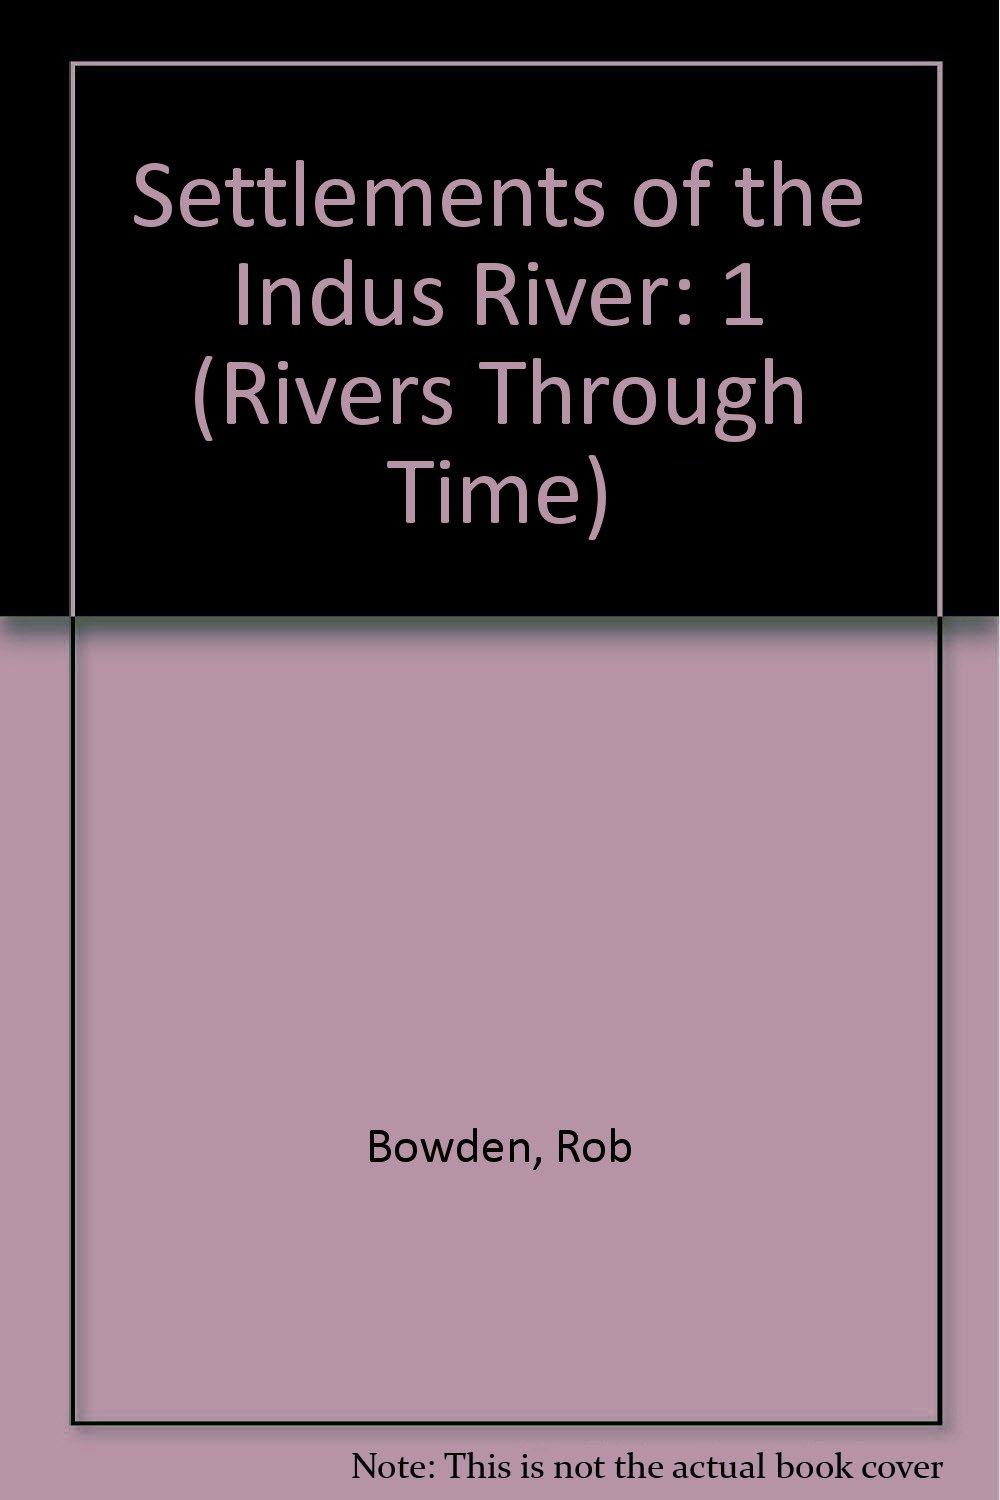 1: Settlements of the Indus River (Rivers Through Time)